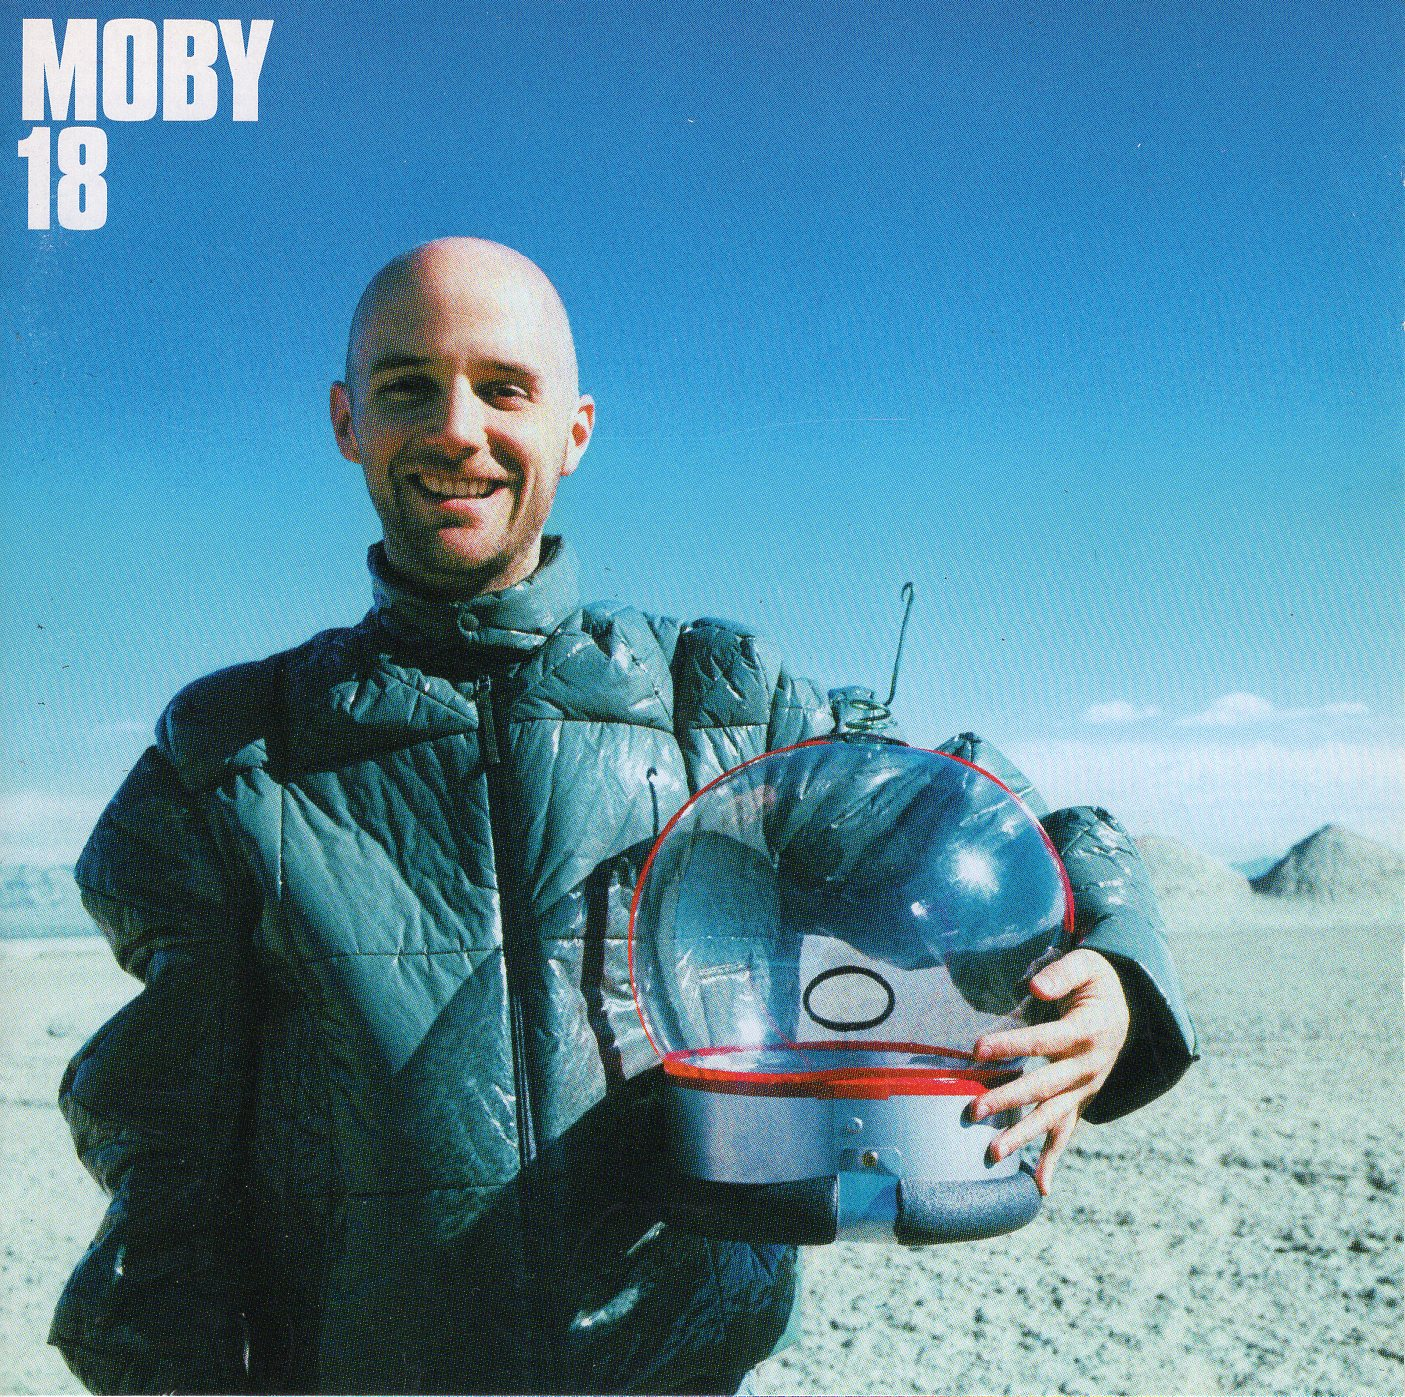 """Moby 18"" Moby"